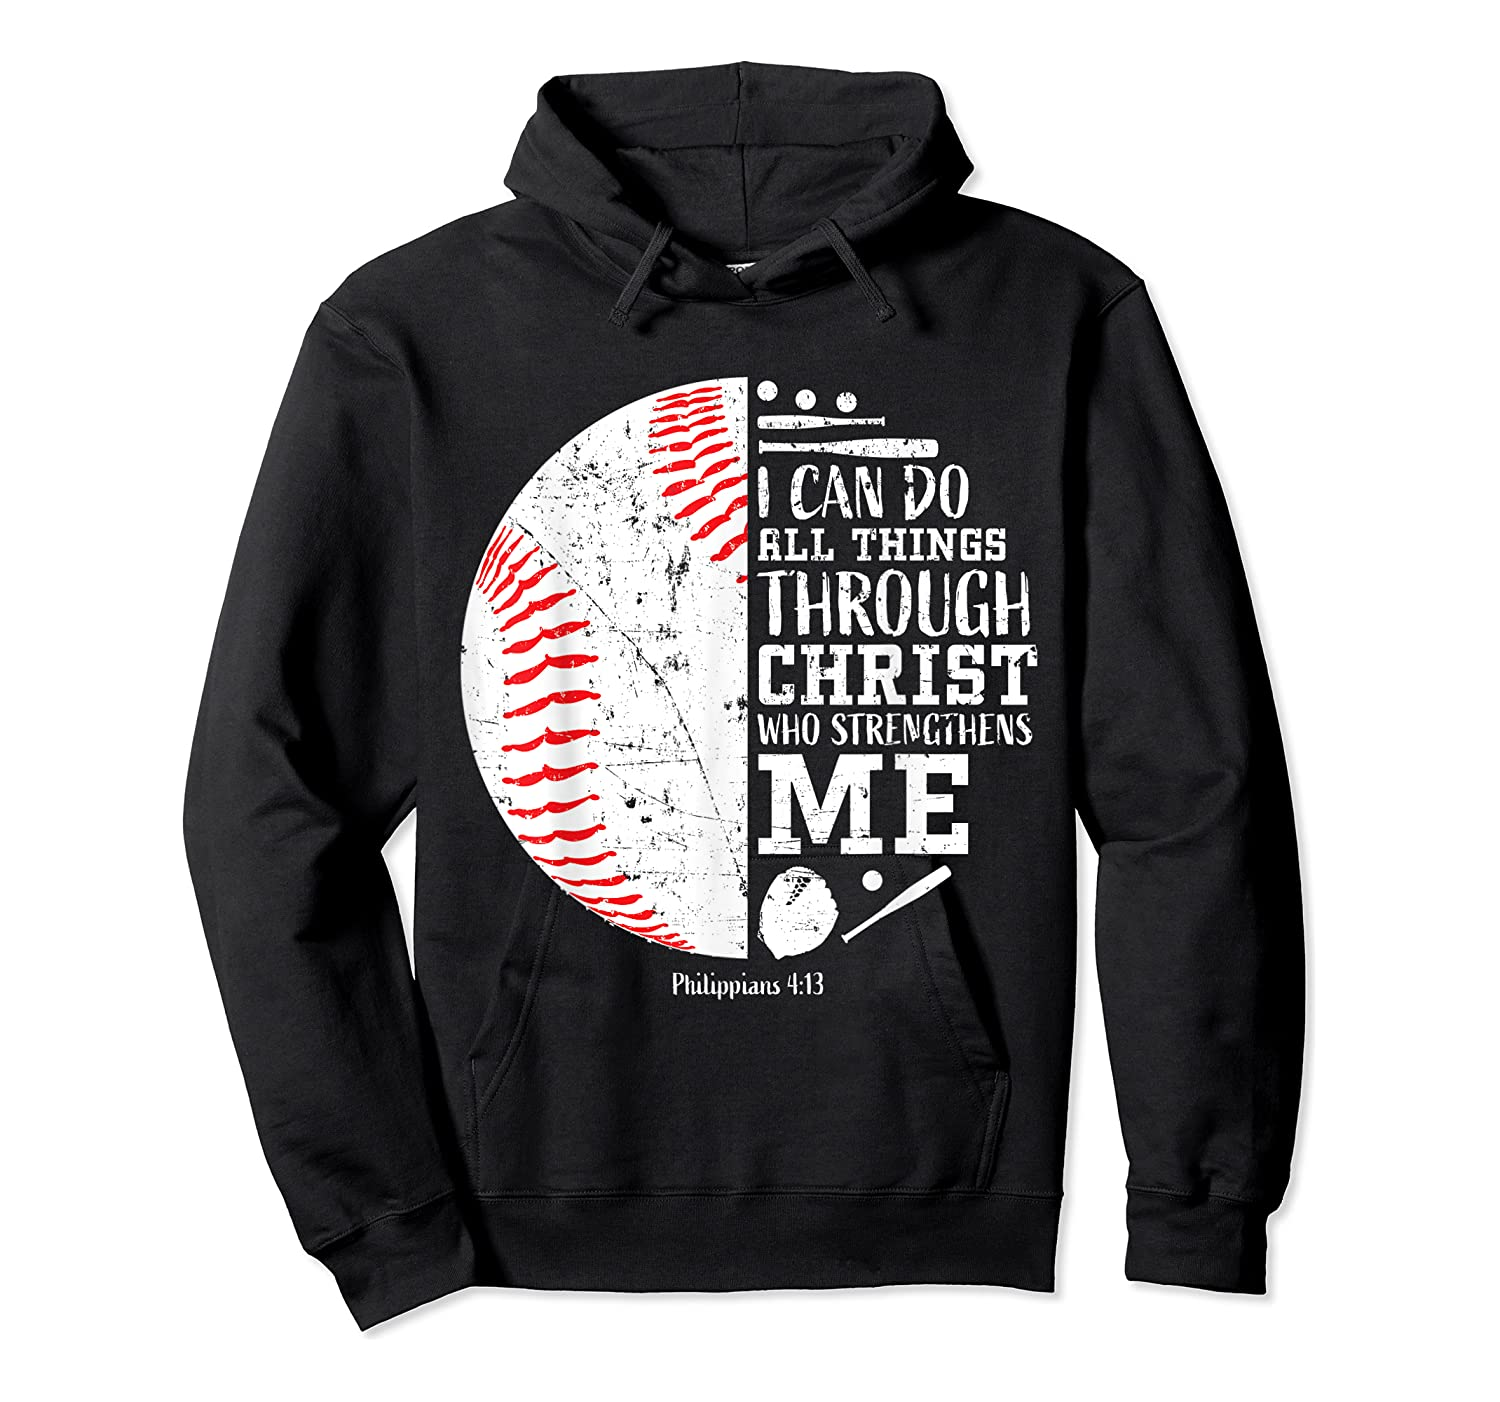 Baseball Gifts Bible Verse Sayings Philippians 413 Shirts Unisex Pullover Hoodie